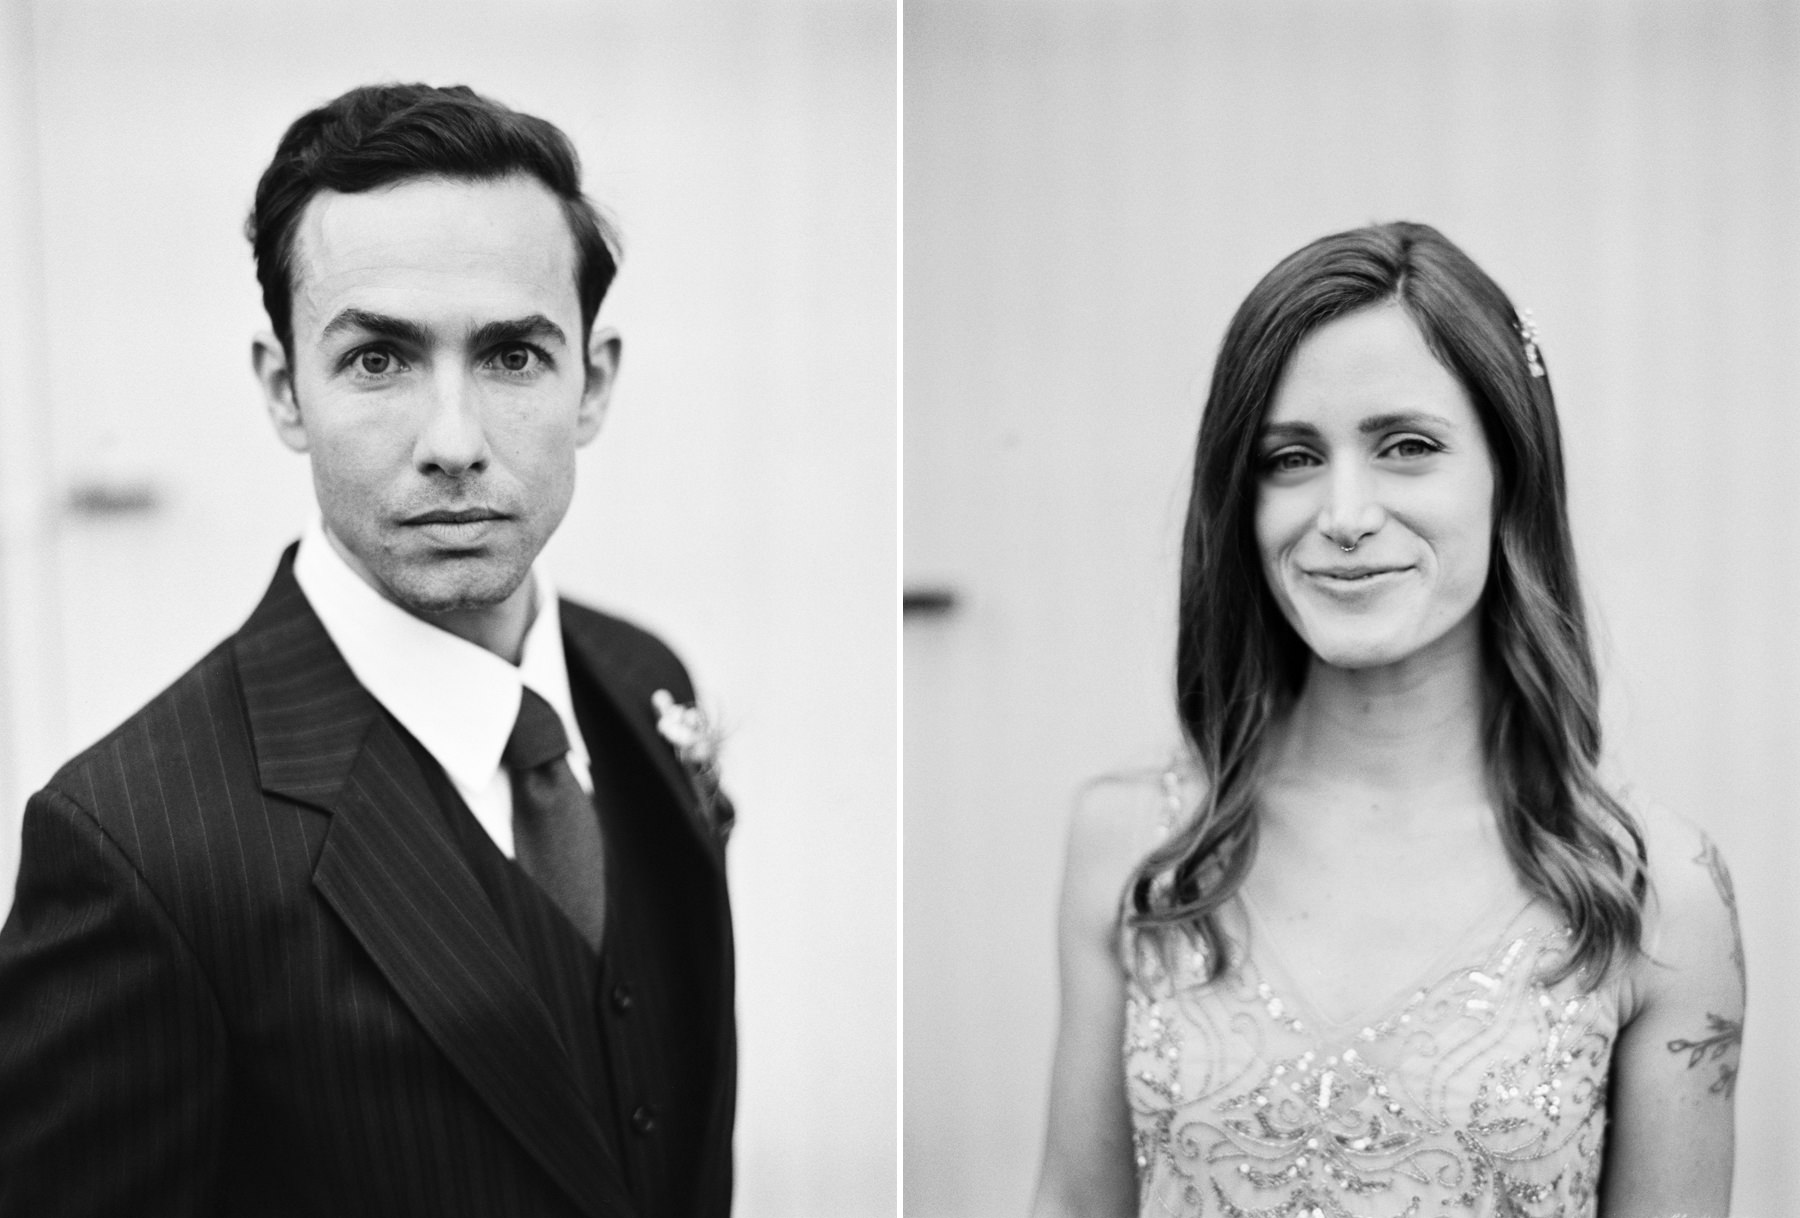 054-urban-wedding-portraits-by-film-photographer-ryan-flynn-in-industrial-area.jpg